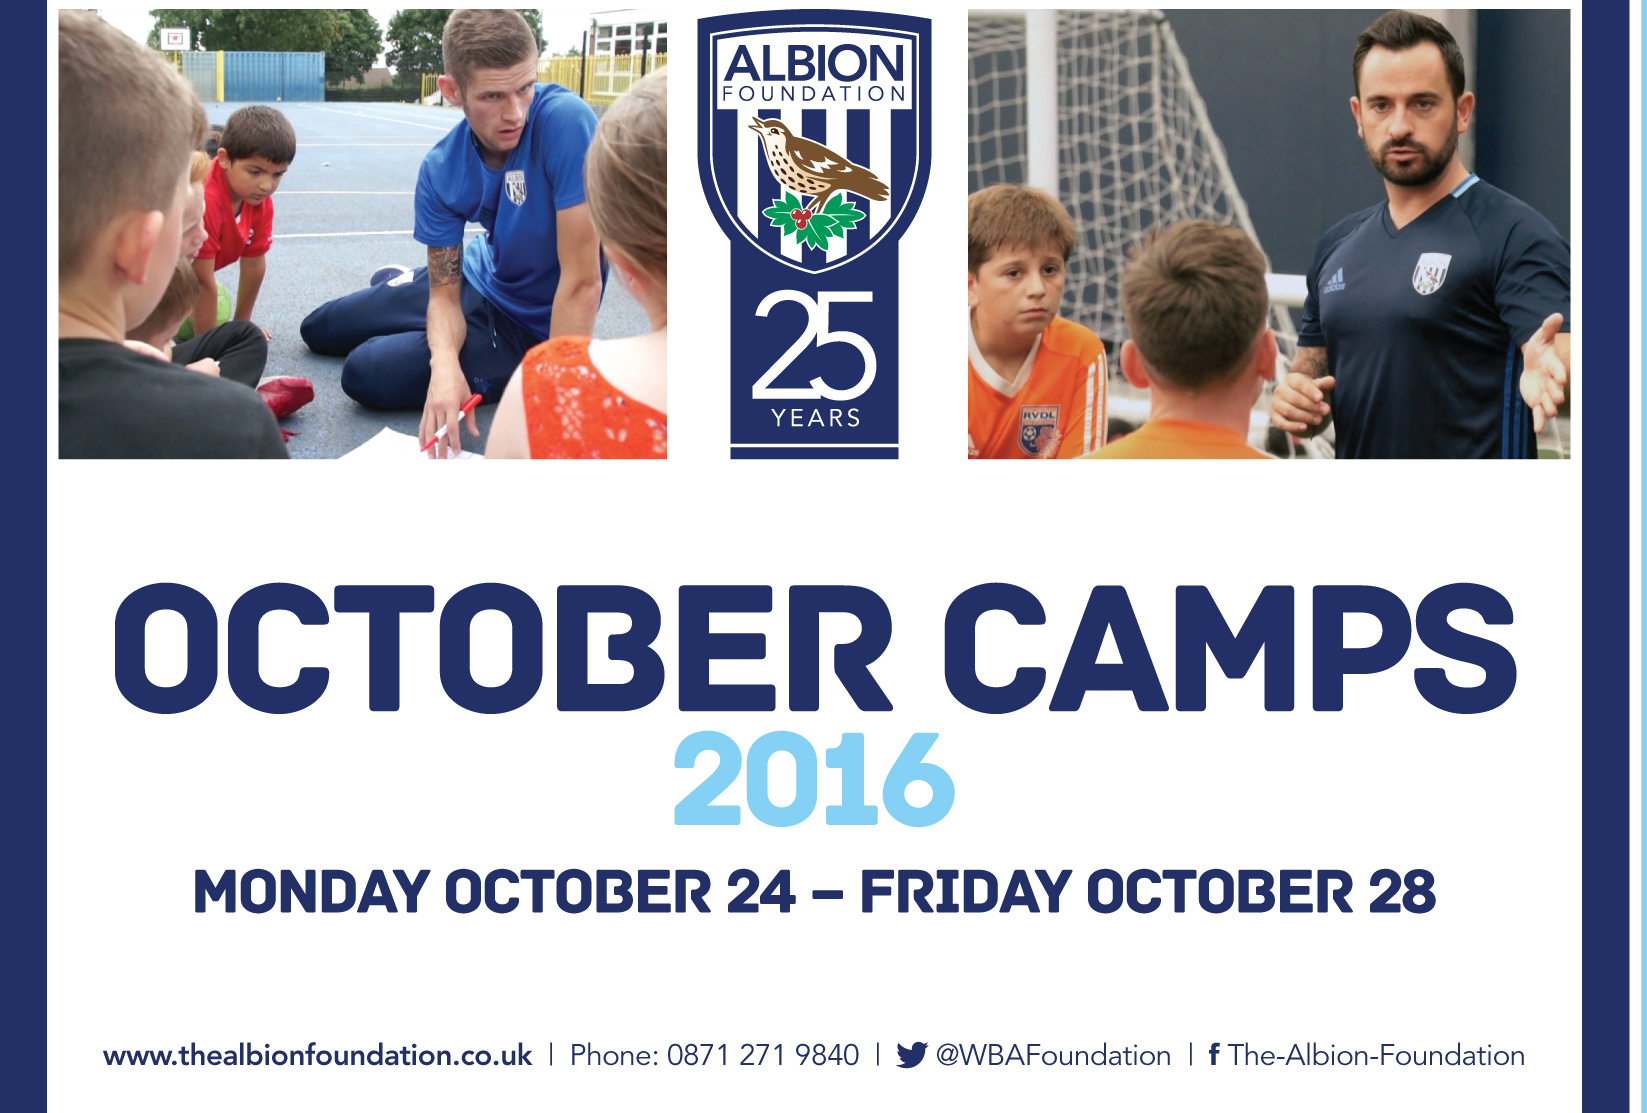 The Albion Foundation Camp poster